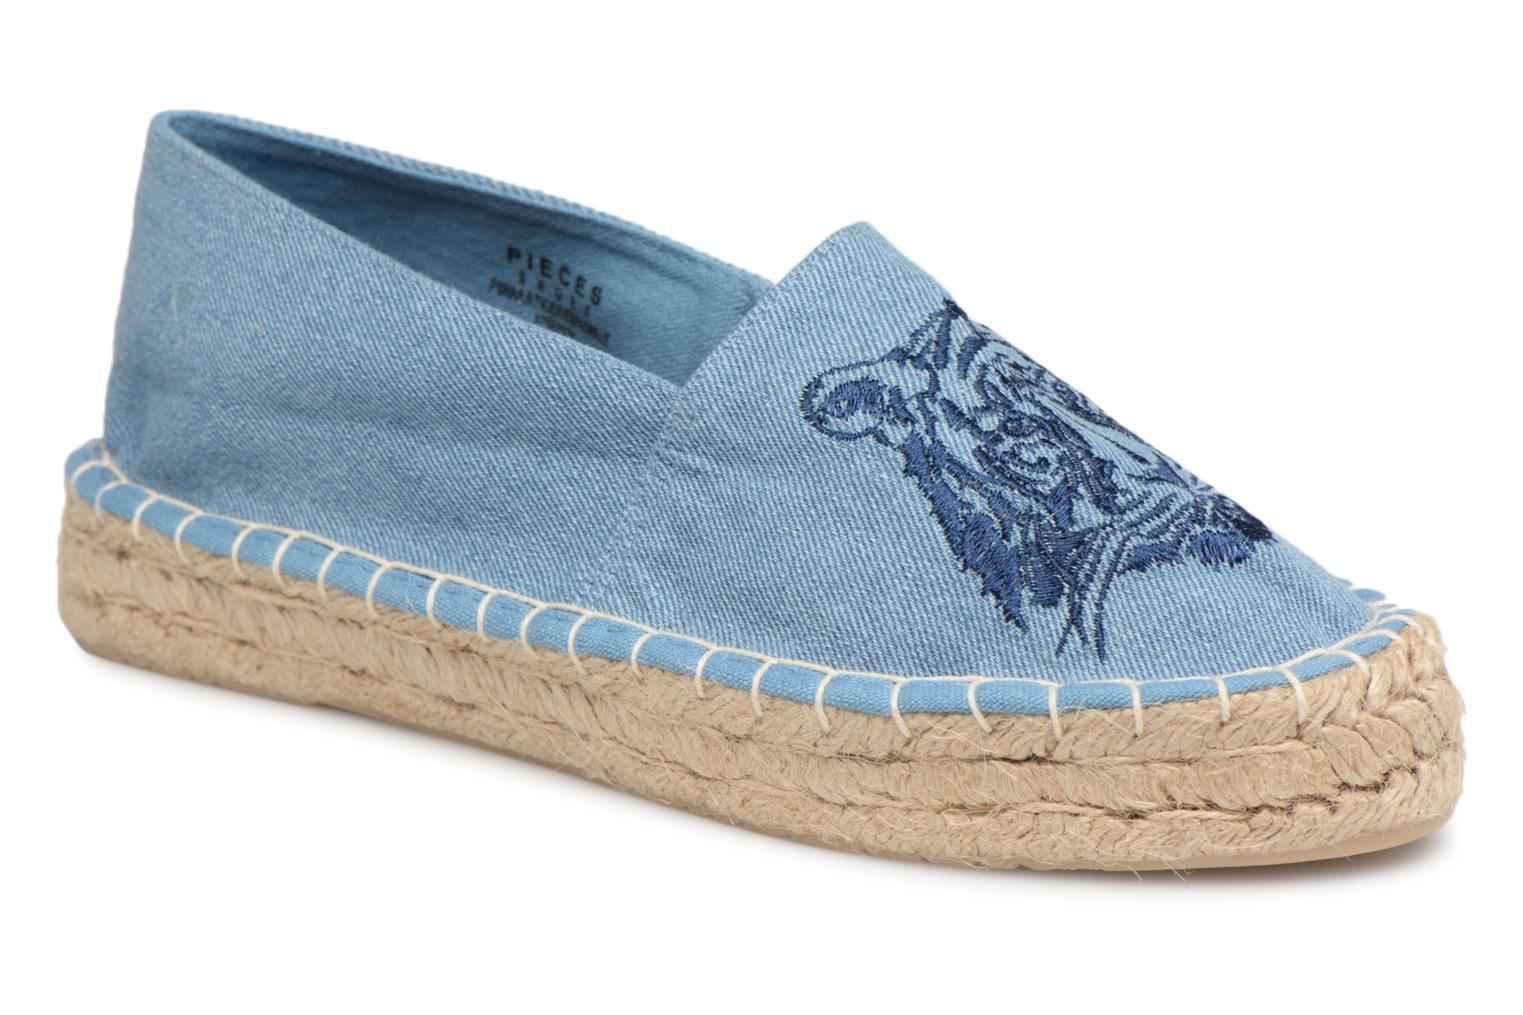 Marques Chaussure femme Pieces femme Haila tiger espadrille Light blue